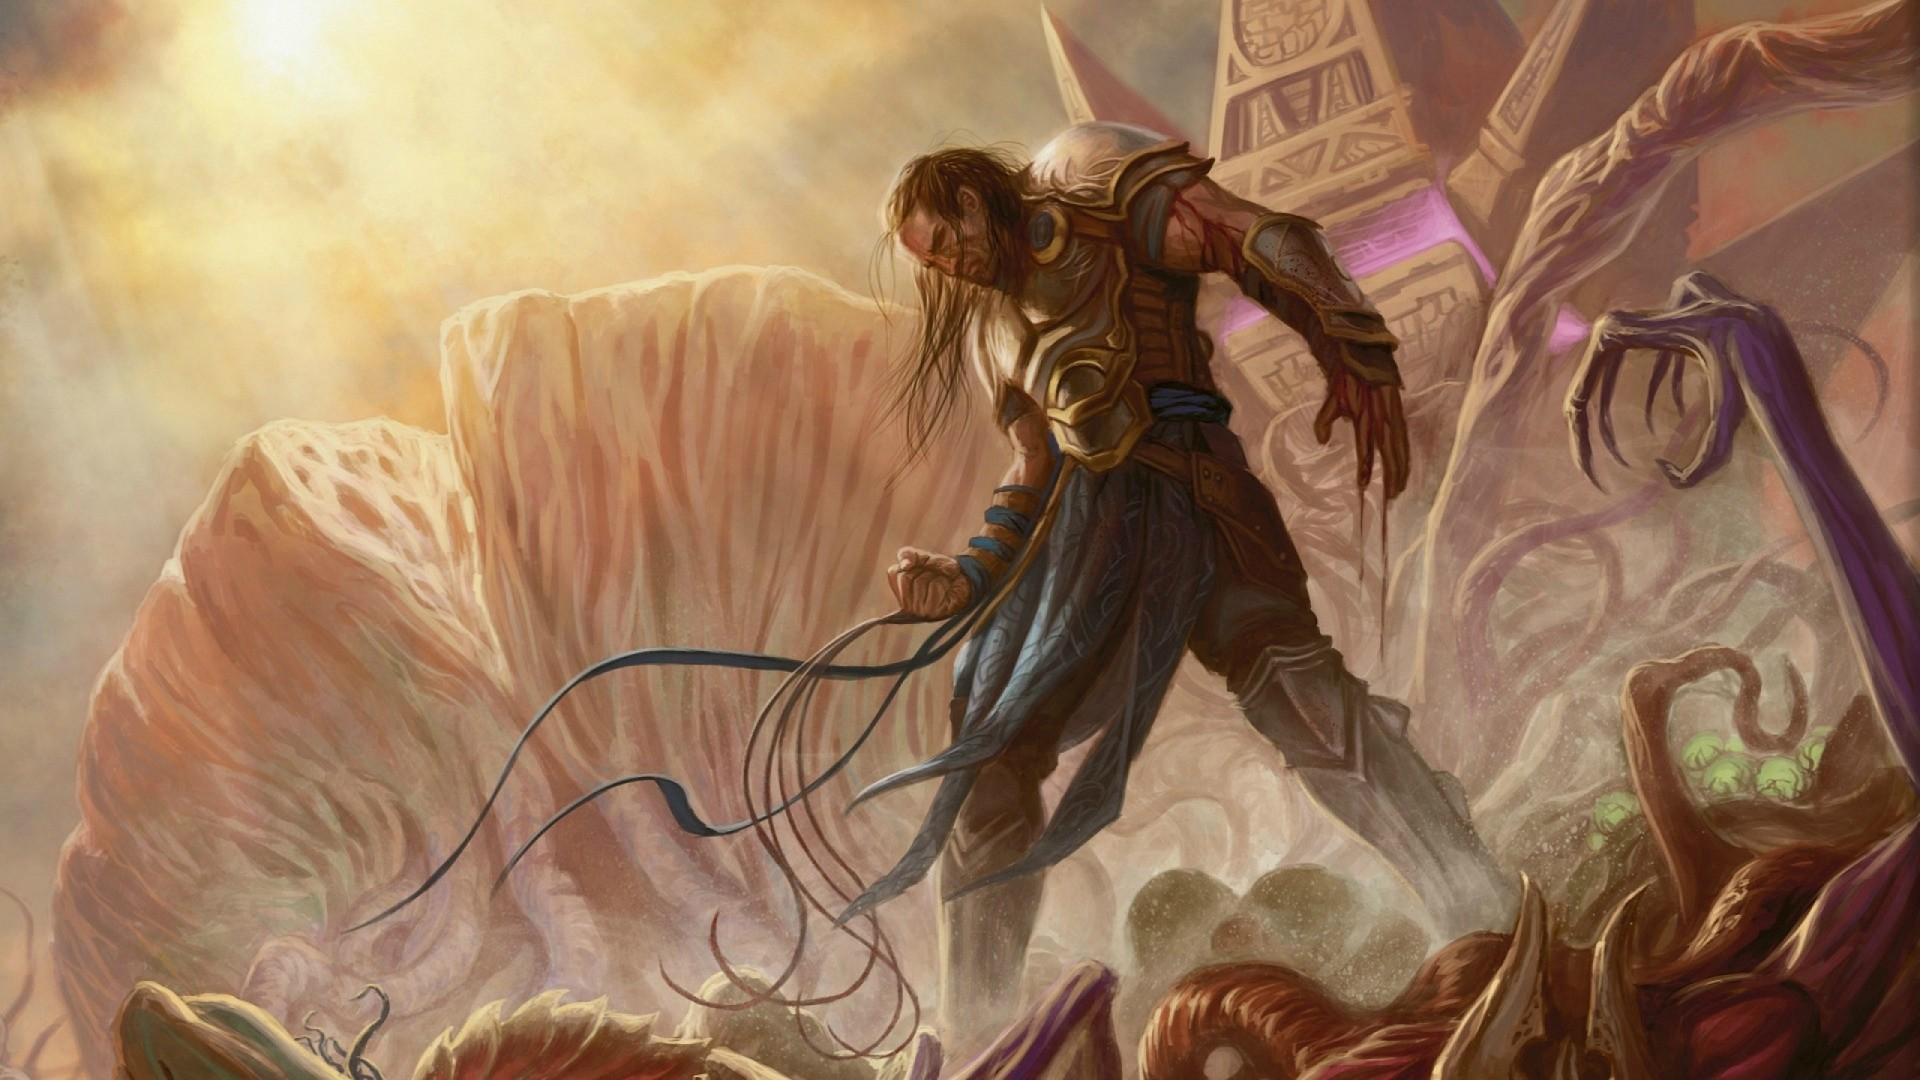 Free Download Magic The Gathering Wallpaper Hd 1920x1080 For